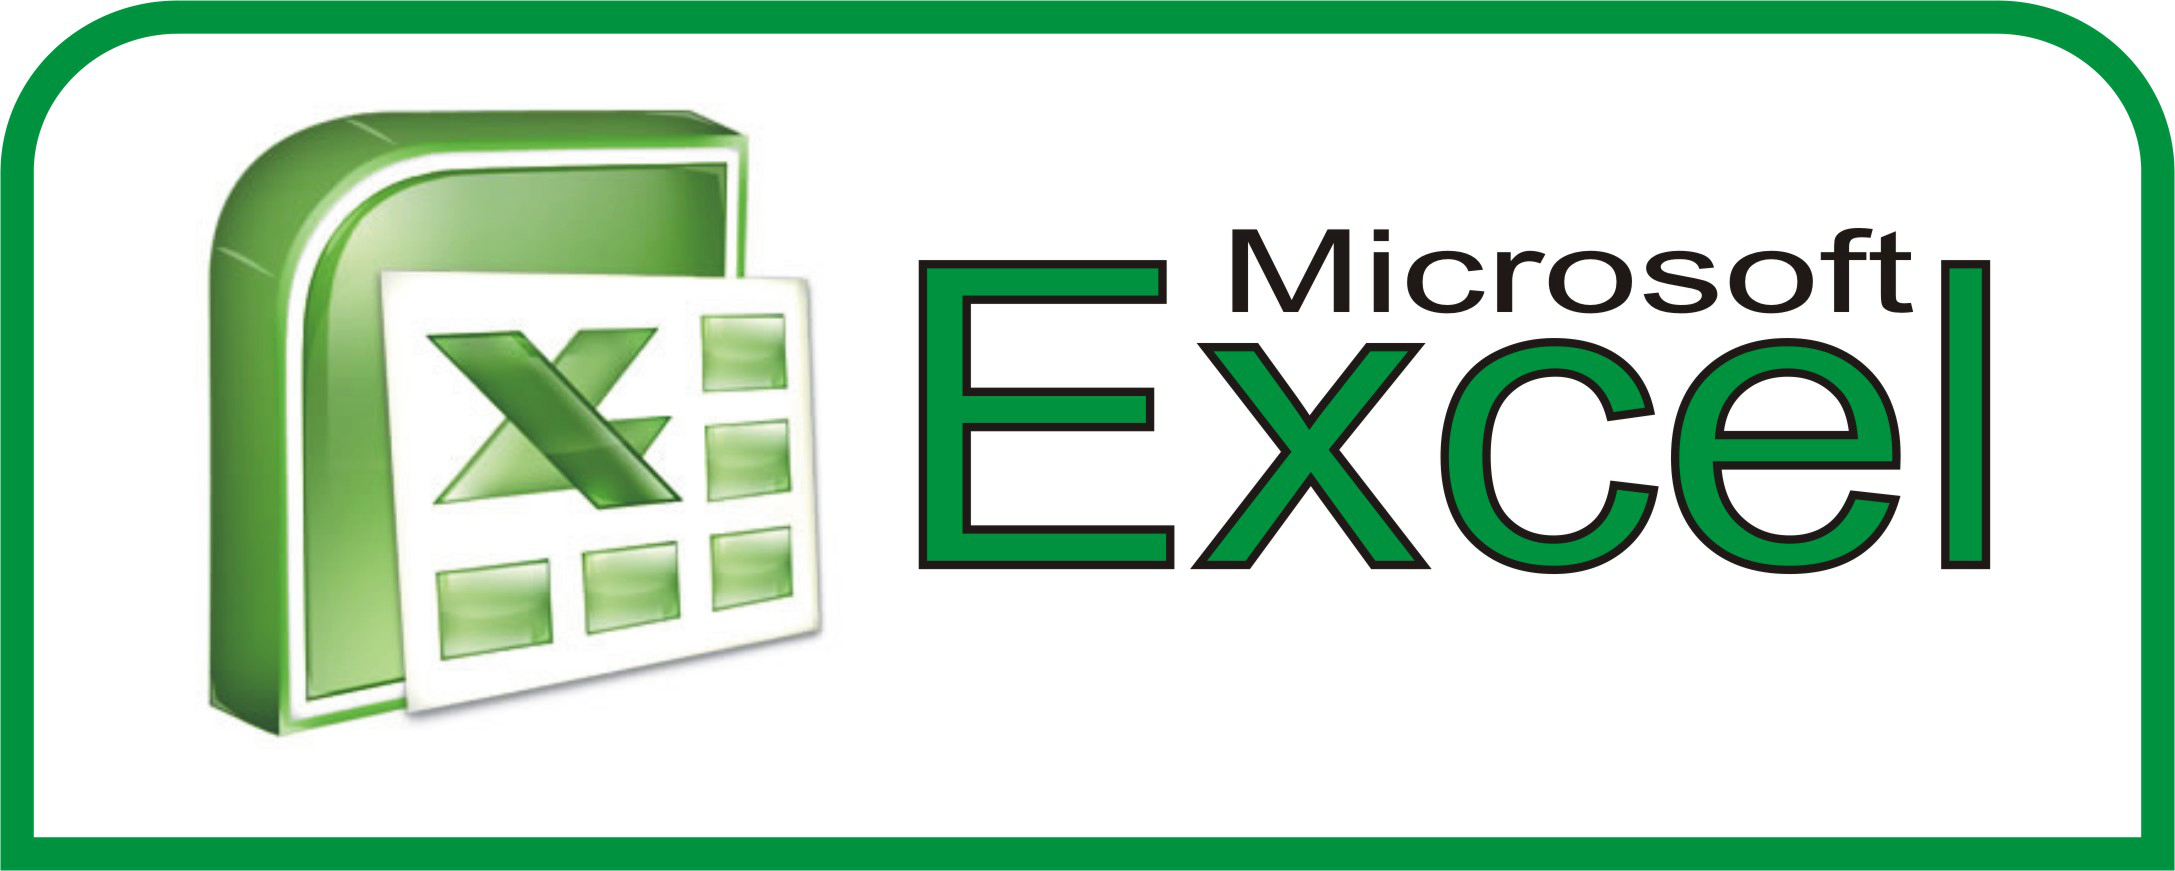 Ediblewildsus  Splendid  Excel Shortcuts You Probably Didnt Know About  Techdissected With Exciting Paste Excel Into Word Besides How Do I Combine Two Columns In Excel Furthermore Excel Solver Tool With Beauteous Range Vba Excel Also Opening Multiple Excel Windows In Addition Adding Data Analysis To Excel And Double If Statement Excel As Well As Mortgage Amortization Table Excel Additionally Plot Distribution In Excel From Techdissectedcom With Ediblewildsus  Exciting  Excel Shortcuts You Probably Didnt Know About  Techdissected With Beauteous Paste Excel Into Word Besides How Do I Combine Two Columns In Excel Furthermore Excel Solver Tool And Splendid Range Vba Excel Also Opening Multiple Excel Windows In Addition Adding Data Analysis To Excel From Techdissectedcom